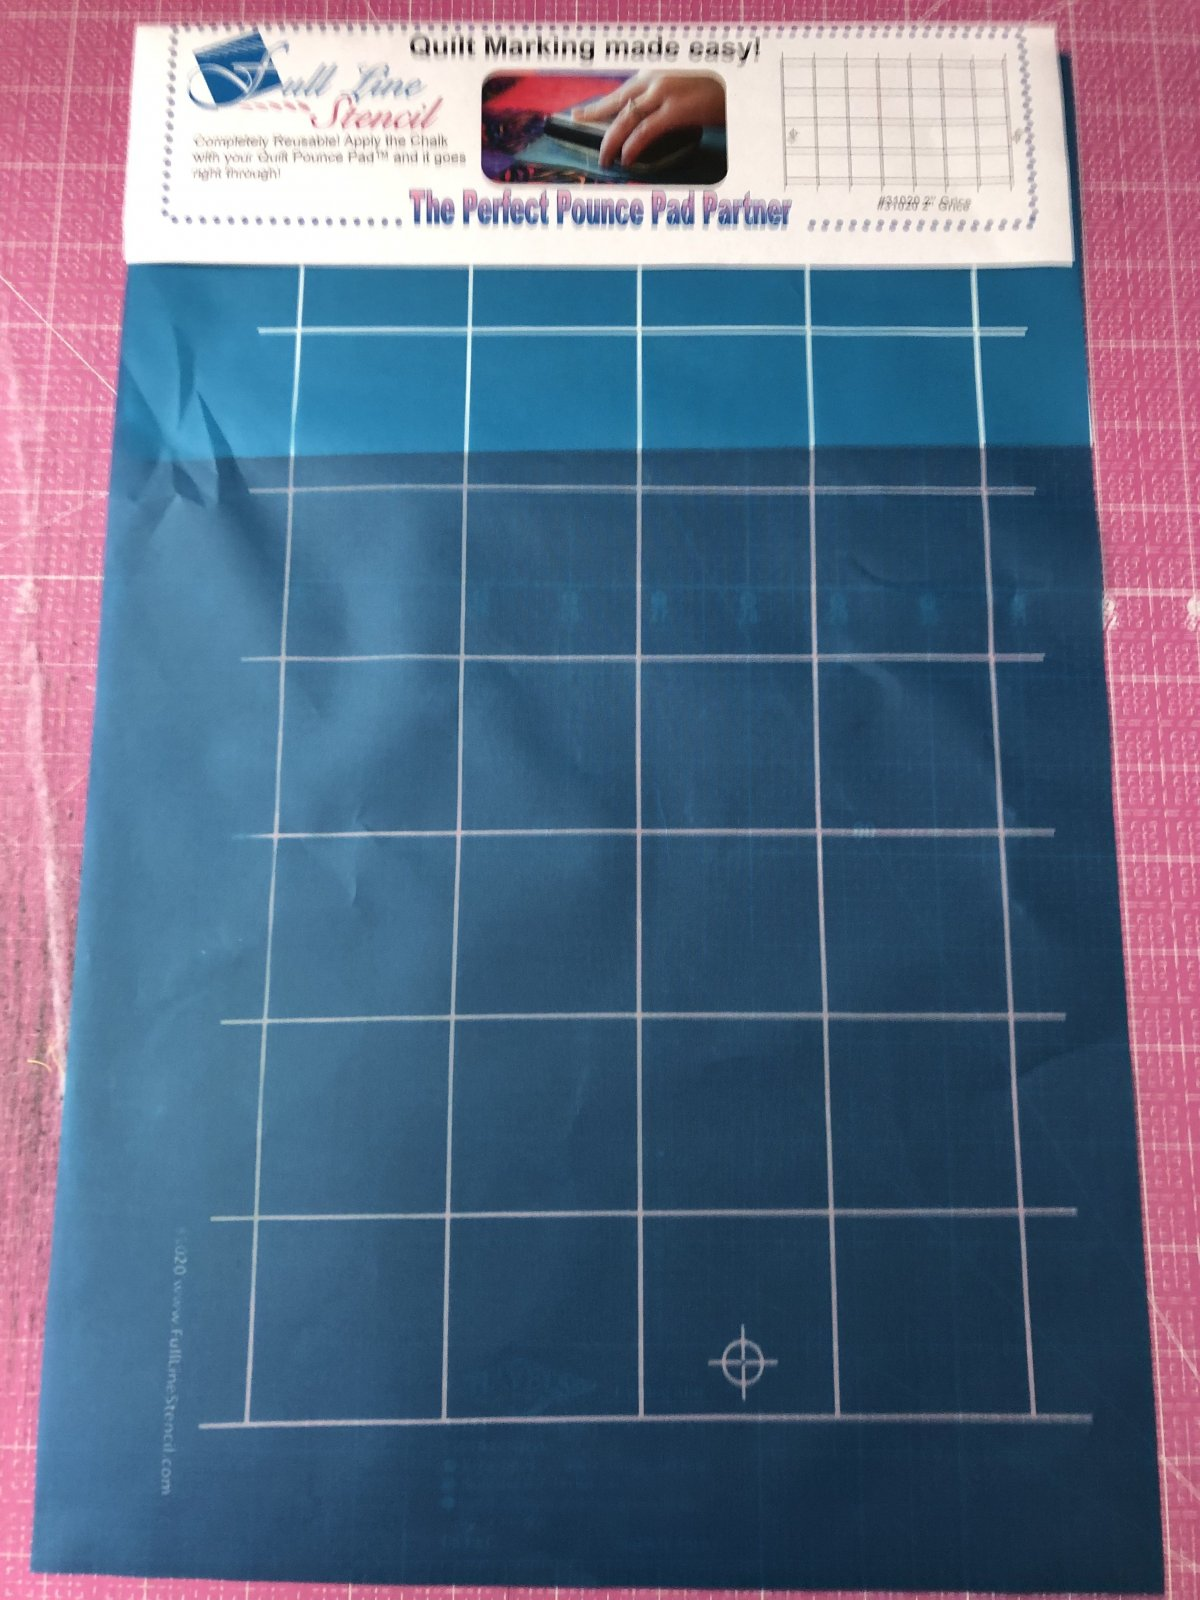 Full Line Stencil 2 Grid Debby Brown Quilts 31020